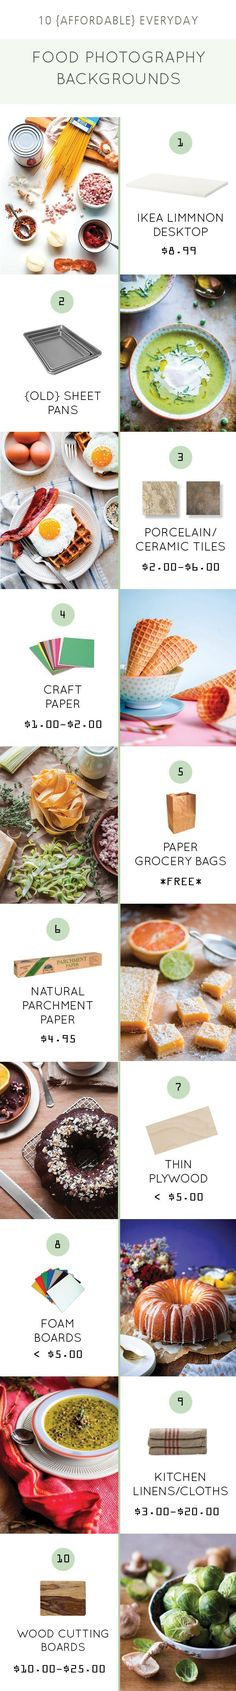 10 Affordable Food Photography Backgrounds. All under $25 dollars a piece!